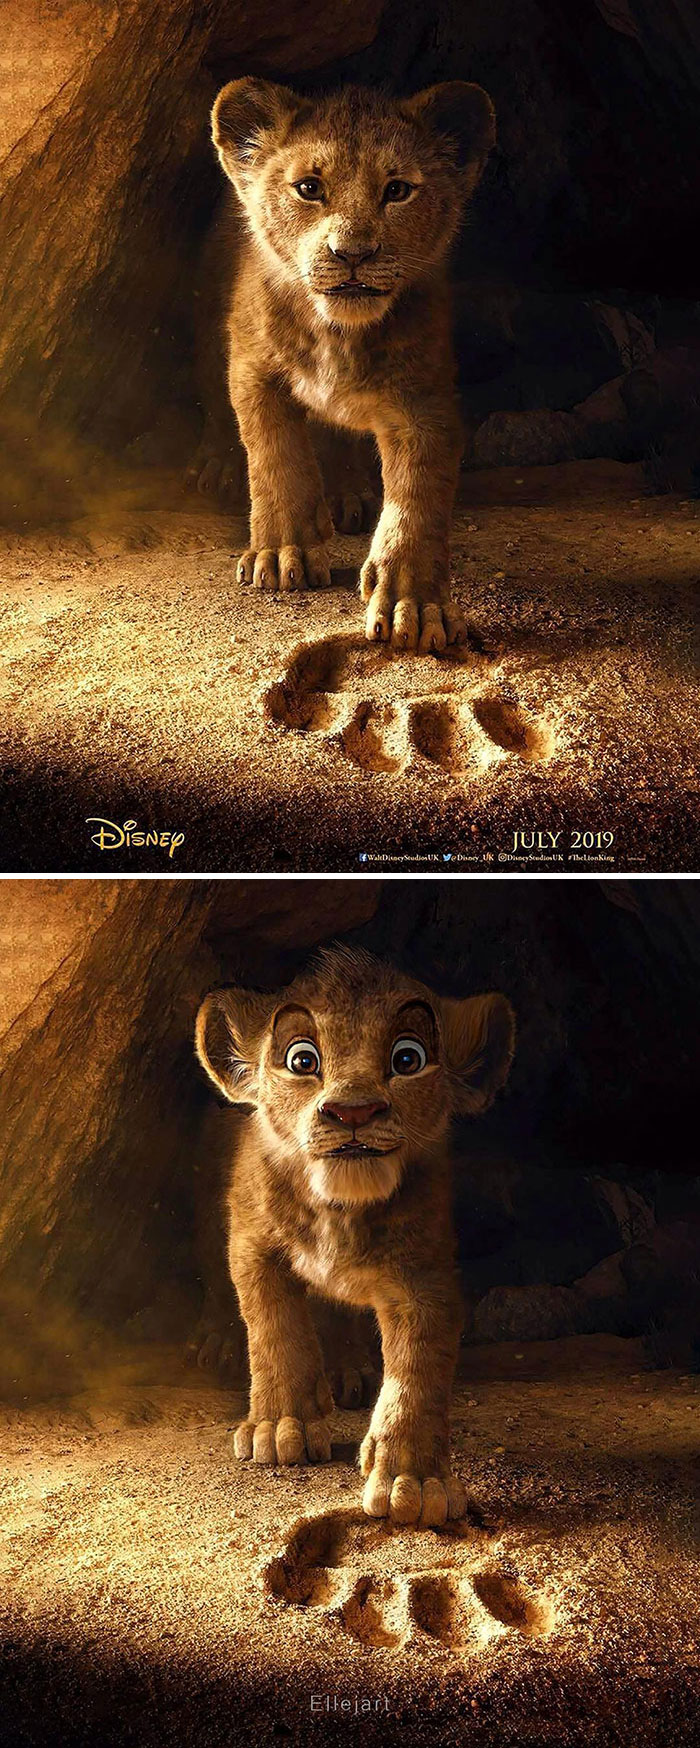 5d38074b38bb4-lion-king-live-action-fan-remake-nikolay-mochkin-5d36c09abe36f__700